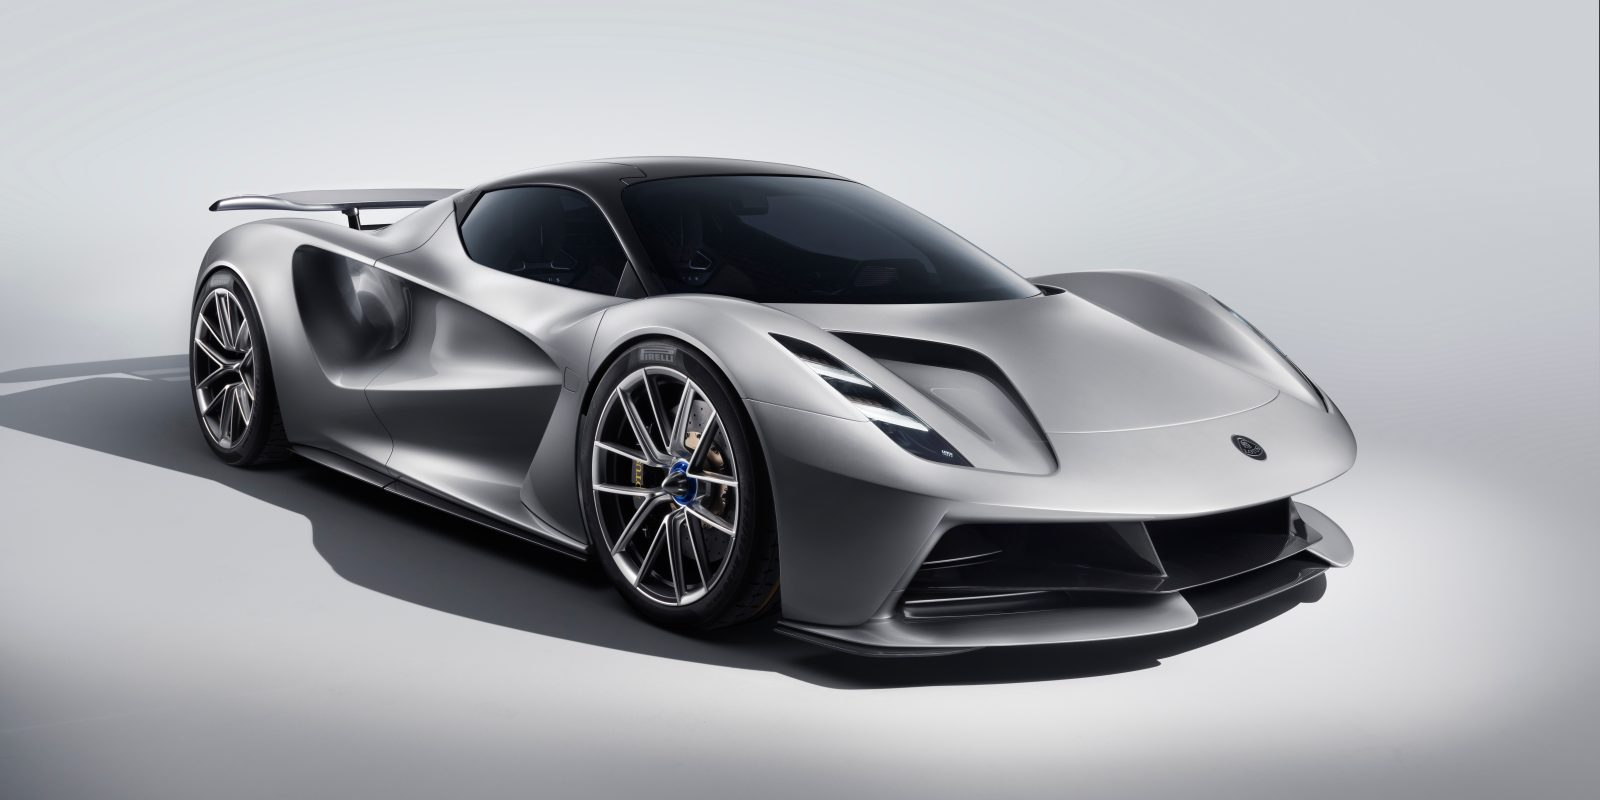 Lotus unveils its Evija, a stunning $2 million 2000 horsepower all-electric hypercar